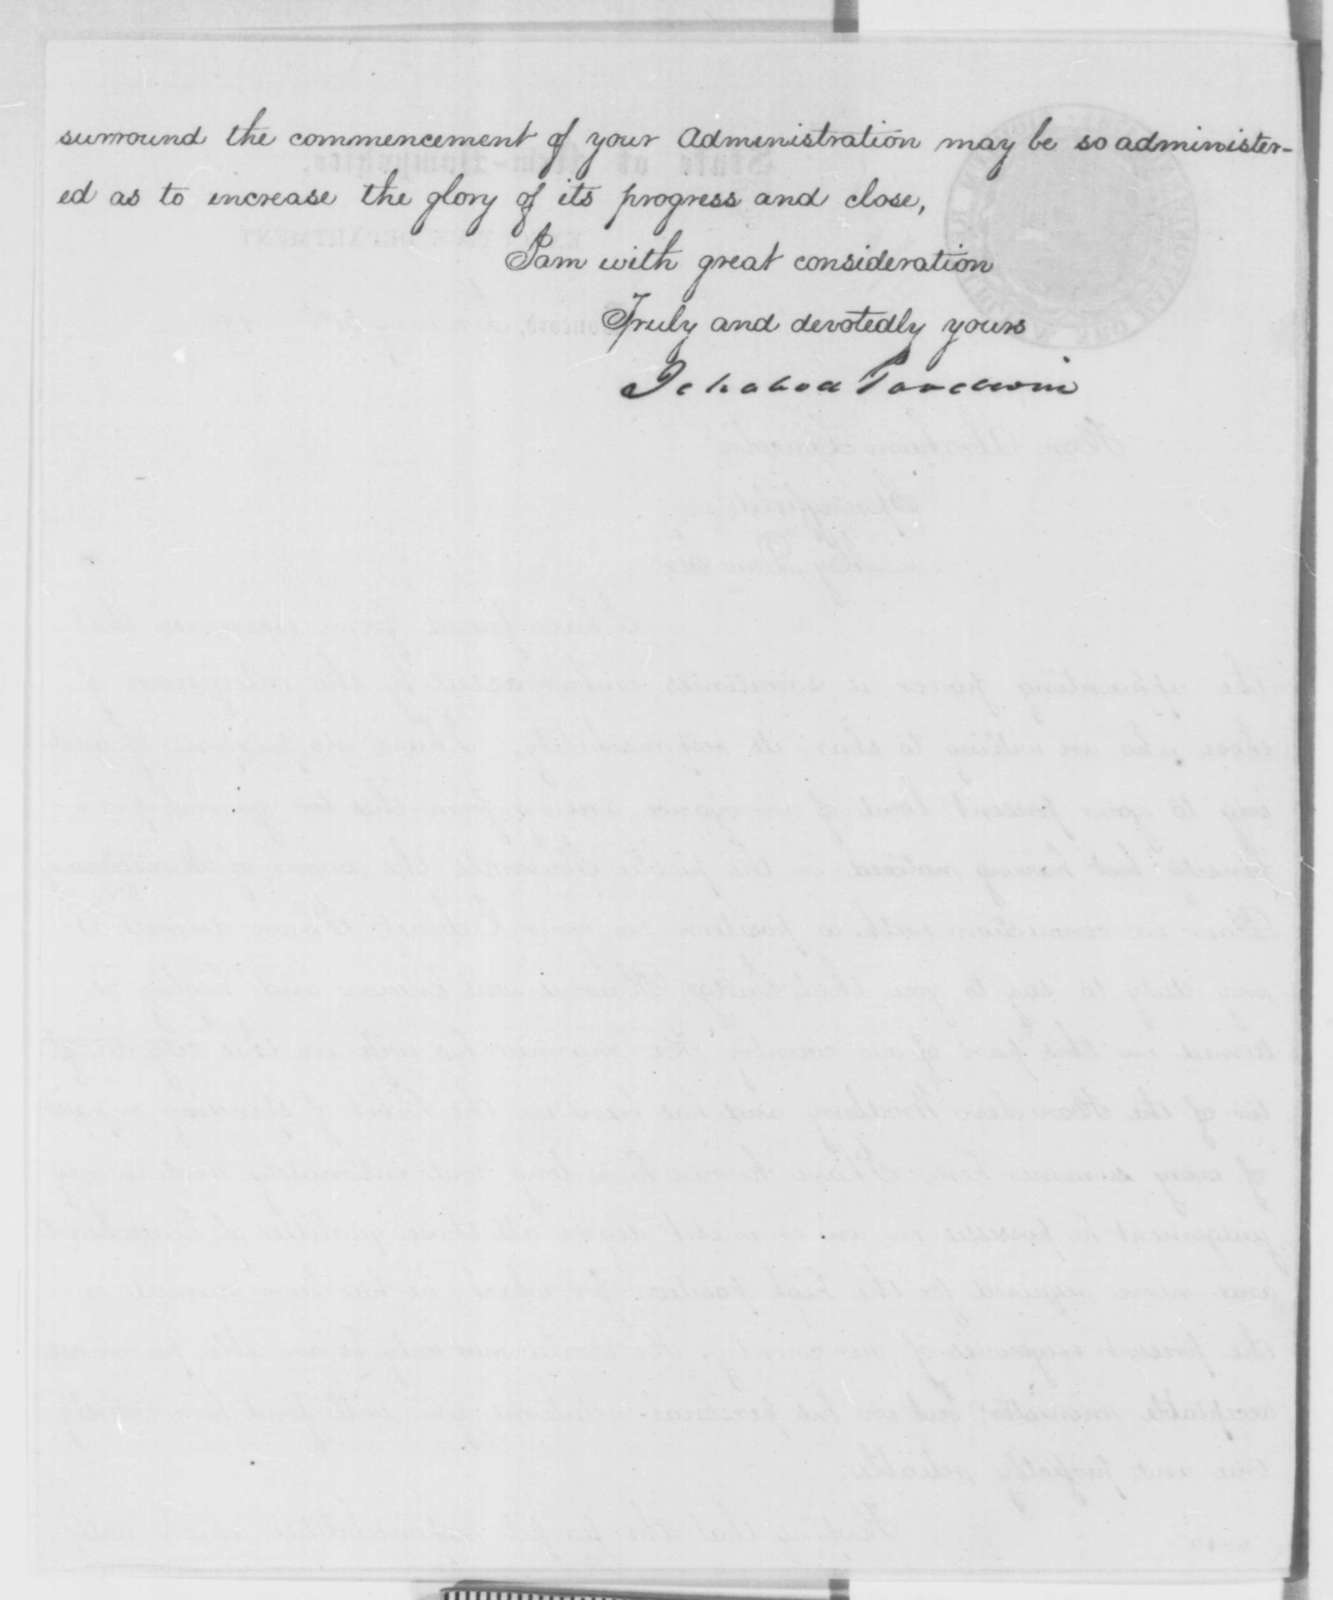 Ichabod Goodwin and W. H. Y. Hackett to Abraham Lincoln, Thursday, January 31, 1861  (Recommend Montgomery Blair for cabinet)